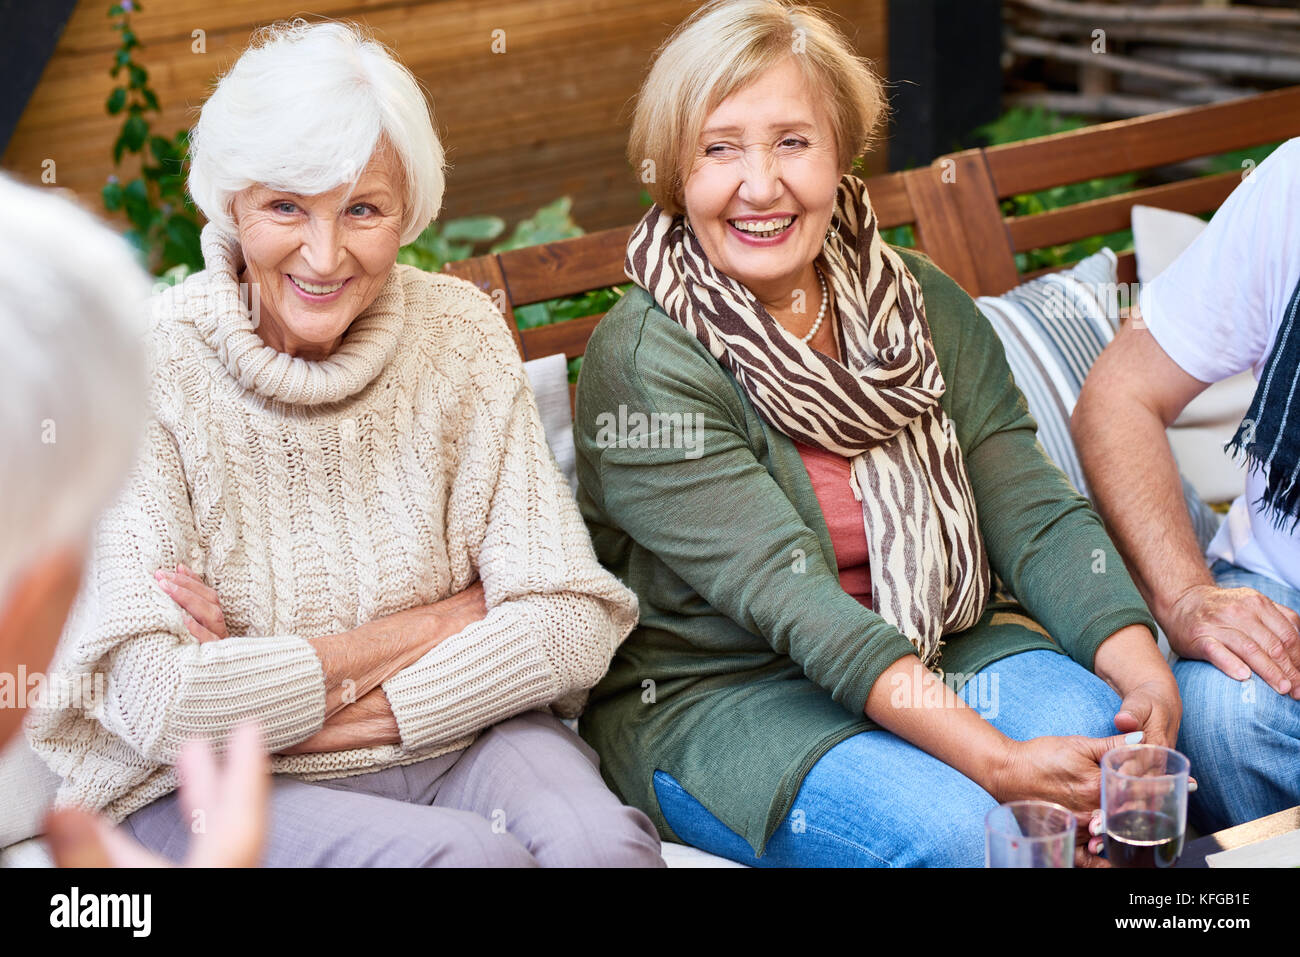 Spending Weekend with Senior Friends - Stock Image